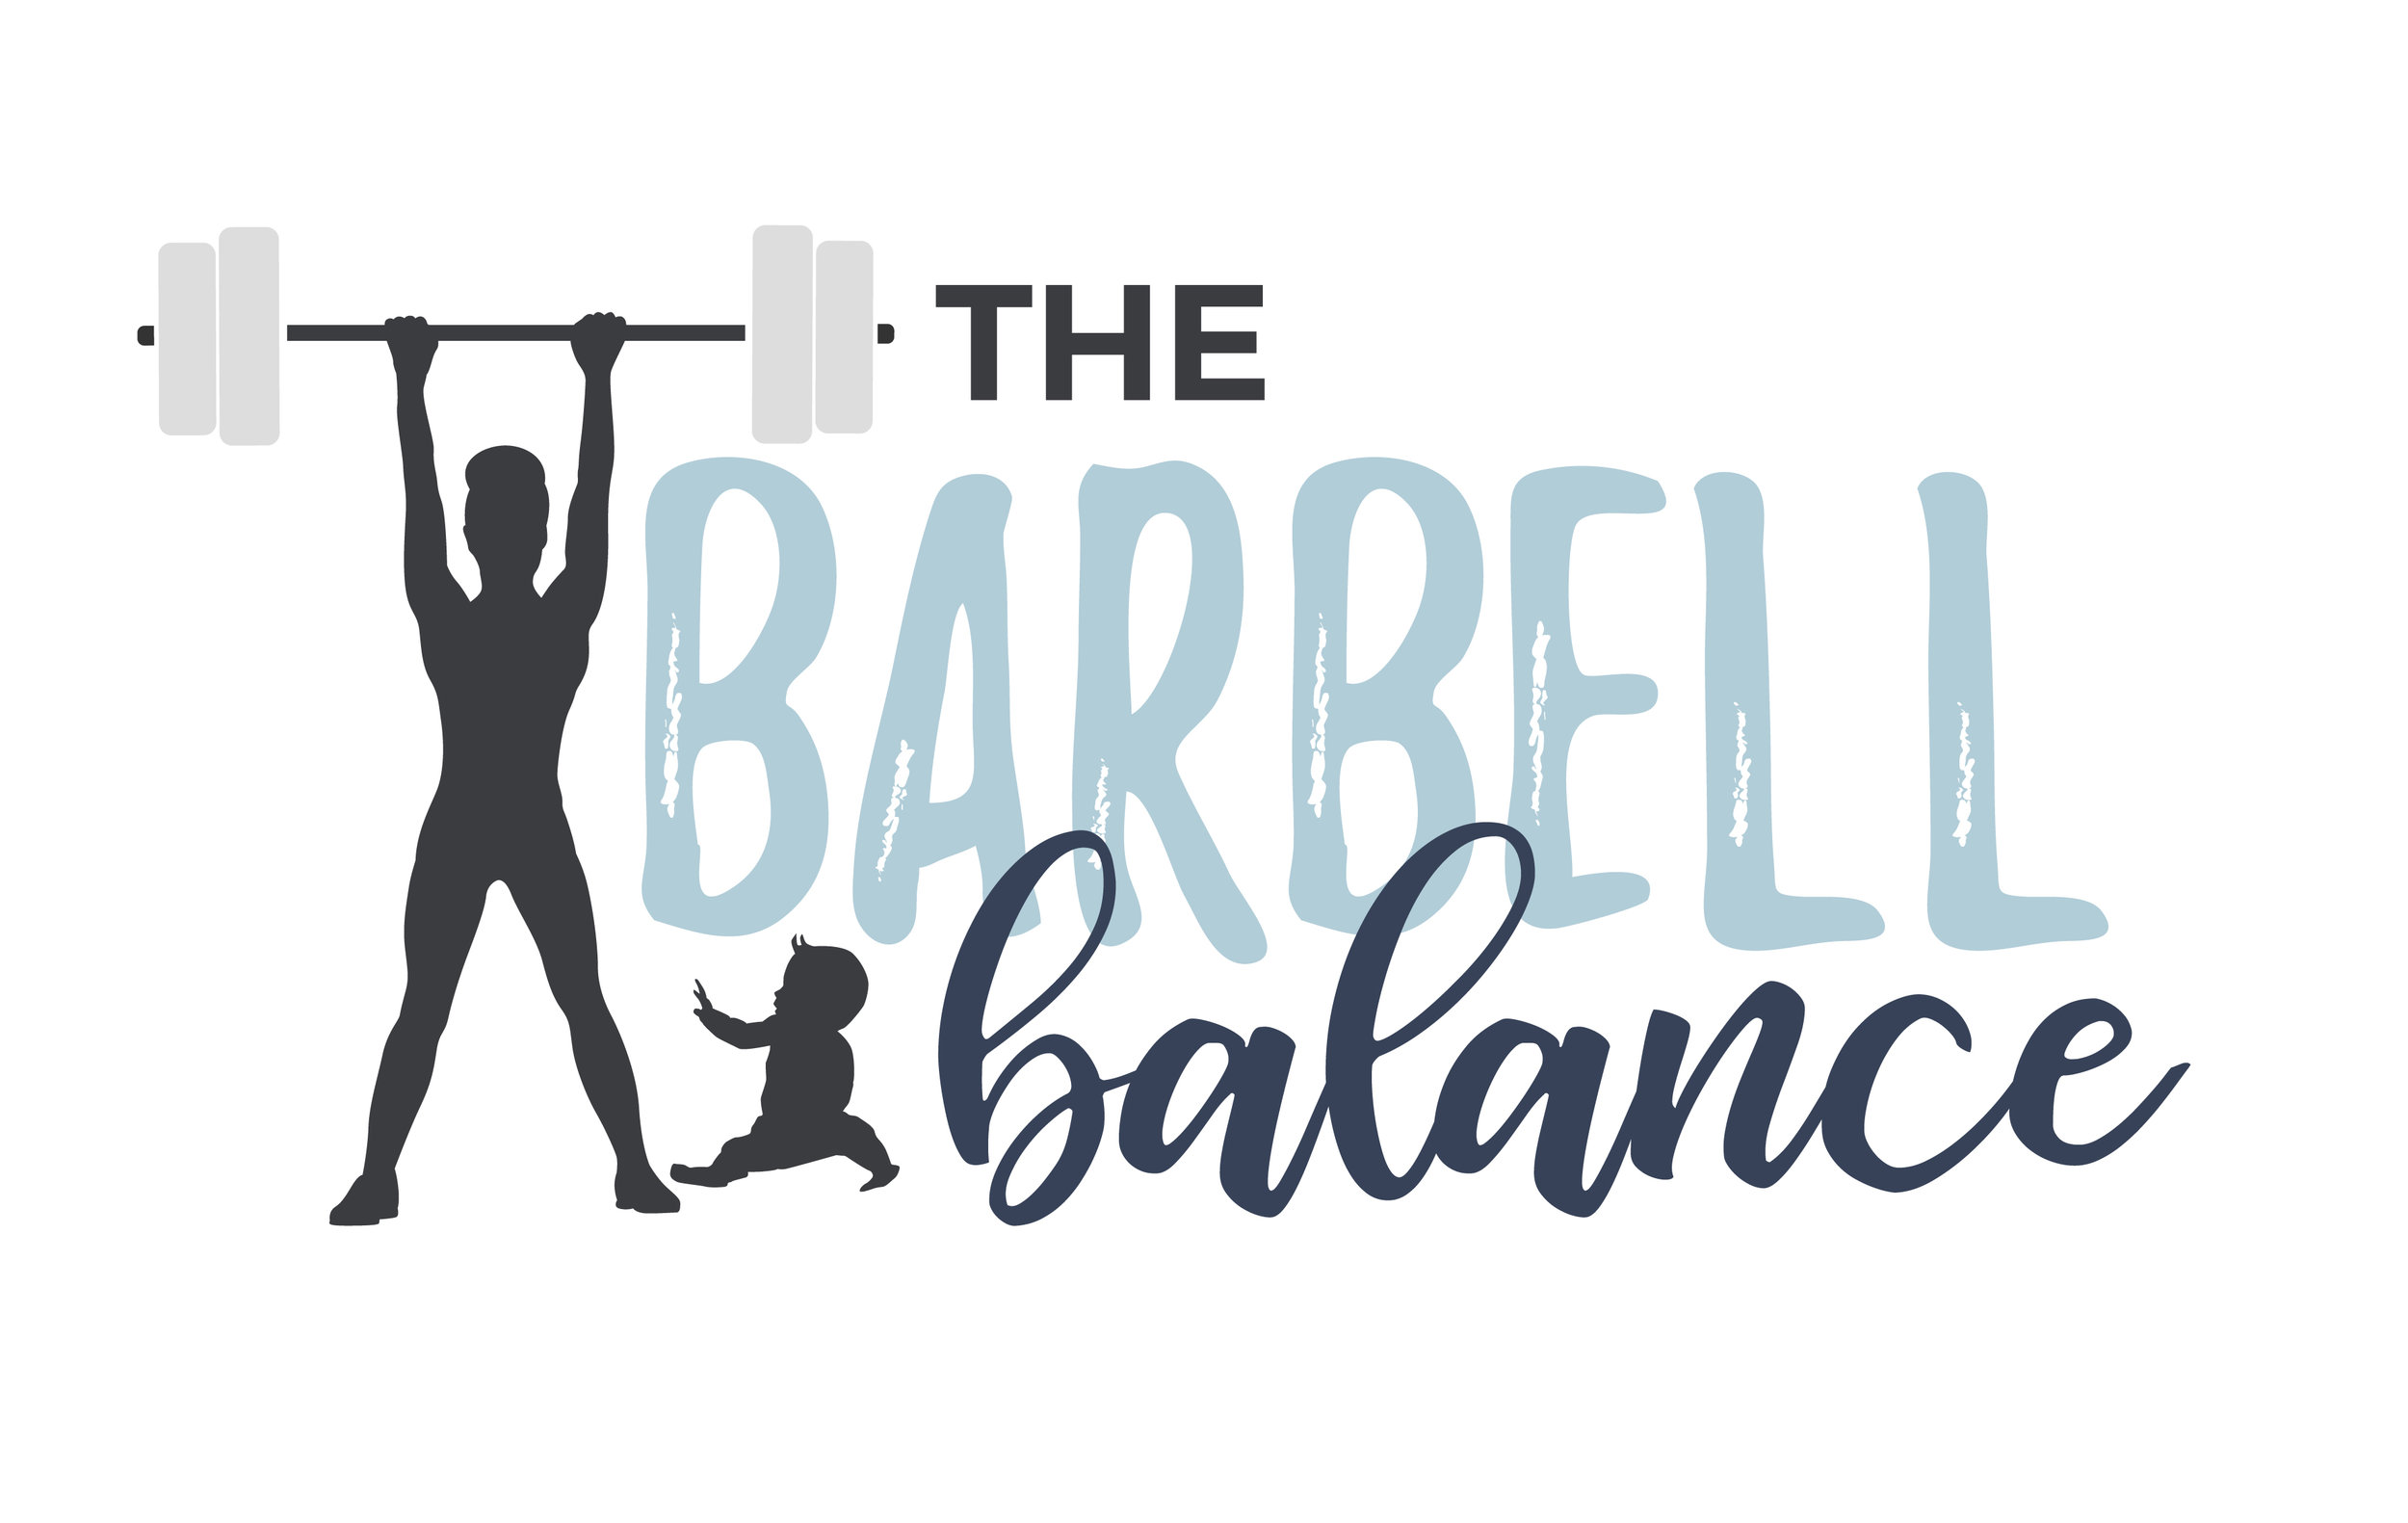 The Barbell Balance Logo | Tiffany Kuehl Designs  Terrell Baldock a busy mom with 3 kids and married for almost 12 years. She grew up in a household where weight was always an issue and unhealthy habits were a part of her norm. That's a cycle she hopes to break for not only her family, bot many other families out there. Terrell works with women to empower them to love their bodies on the inside out. Her ideal client is a new or second-time mom who is looking for a healthier approach to fitness during/after pregnancy. She is someone who has an active history but is experiencing issues with her pelvic floor. She is looking to regain her previous abilities without these issues.  #branding #websitedesign #divi #dividesign #postpartumfitness #fitnesscoach #fitness